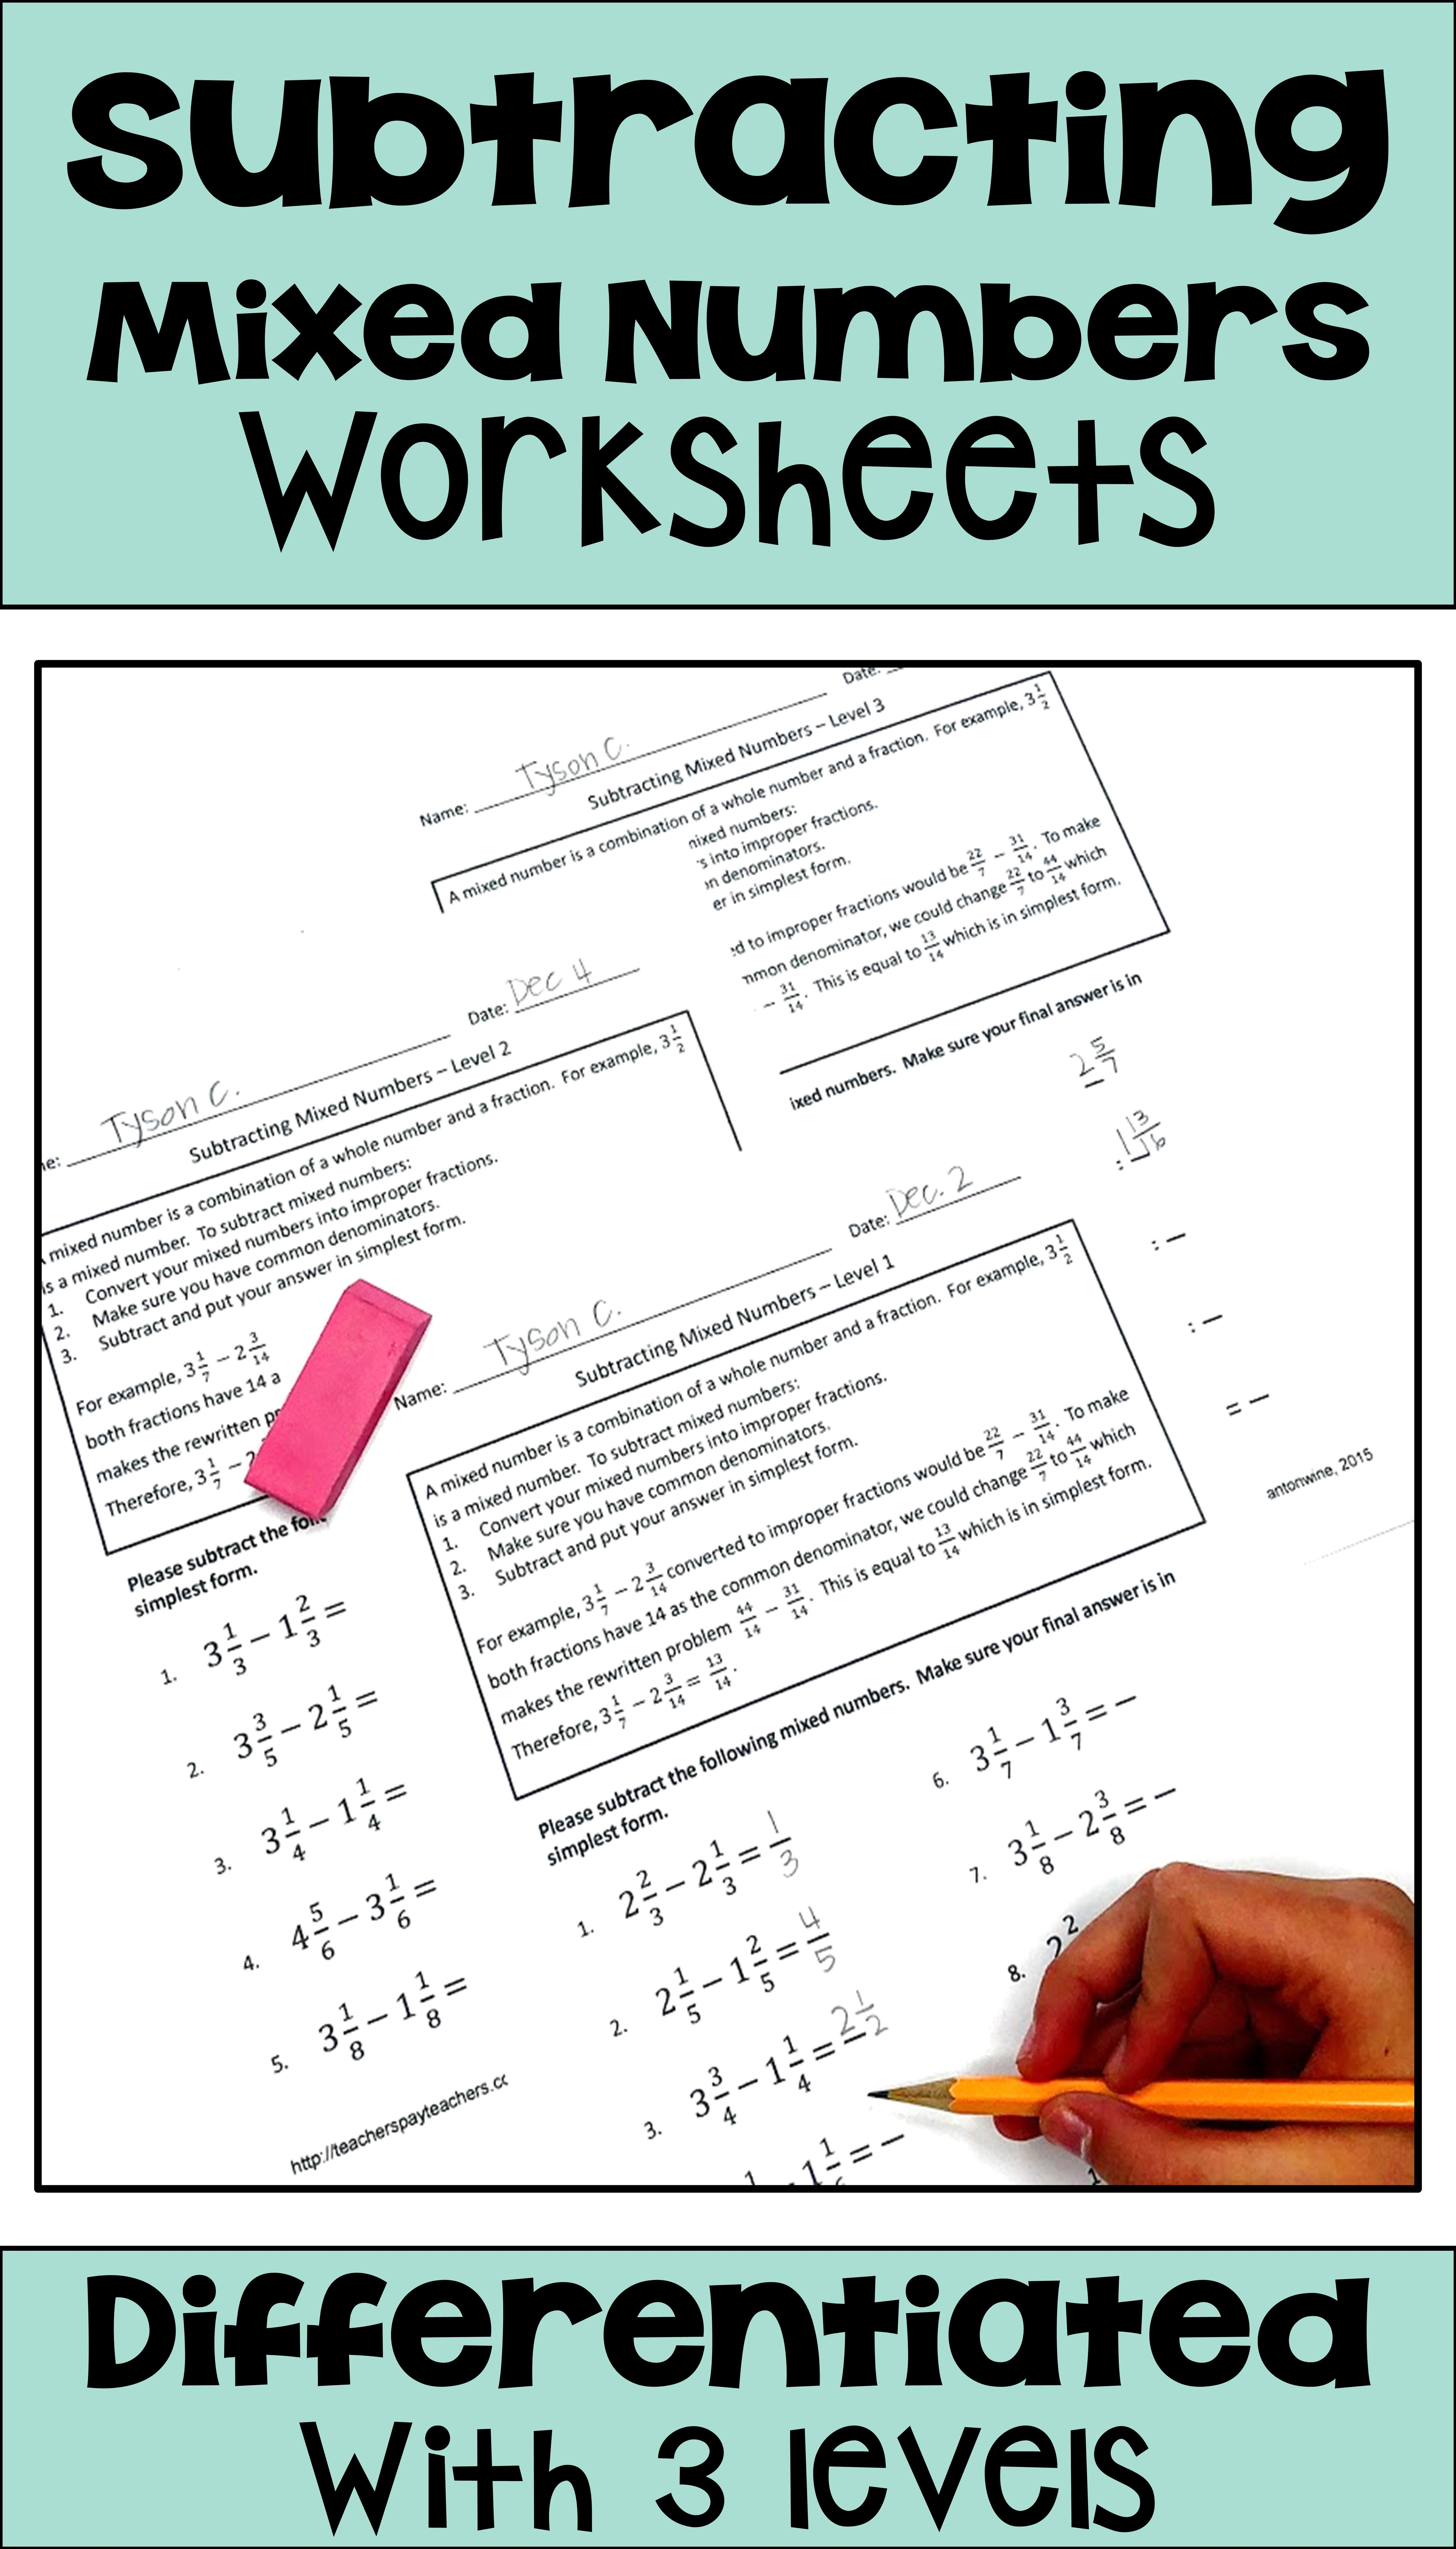 Subtracting Mixed Numbers Worksheets With Printable And Digital Options Subtract Mixed Numbers Subtraction Mixed Numbers